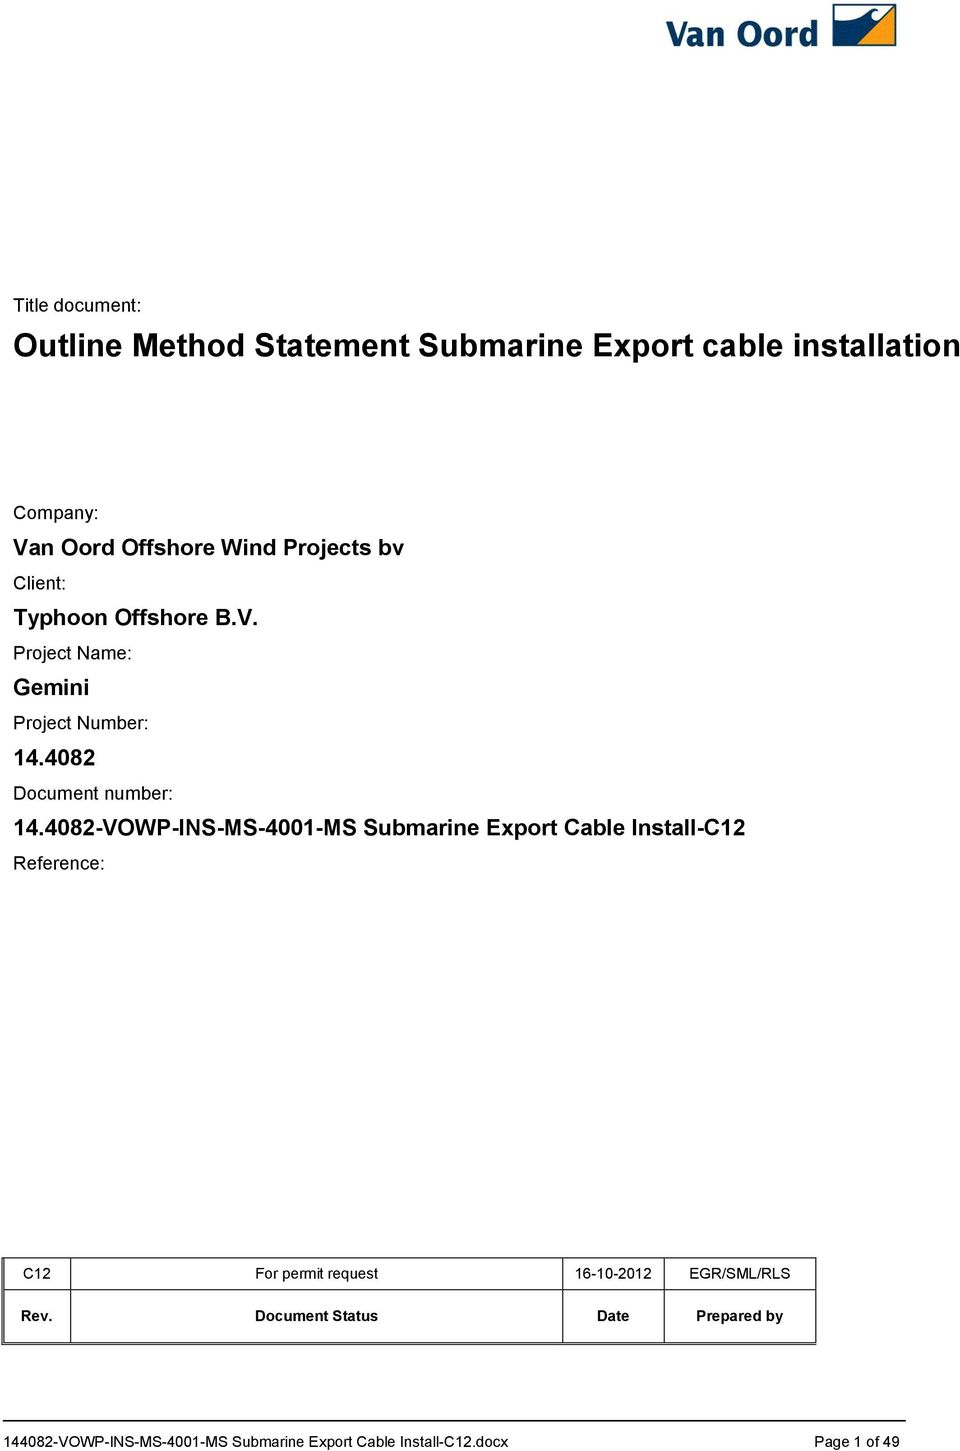 Outline Method Statement Submarine Export cable installation - PDF